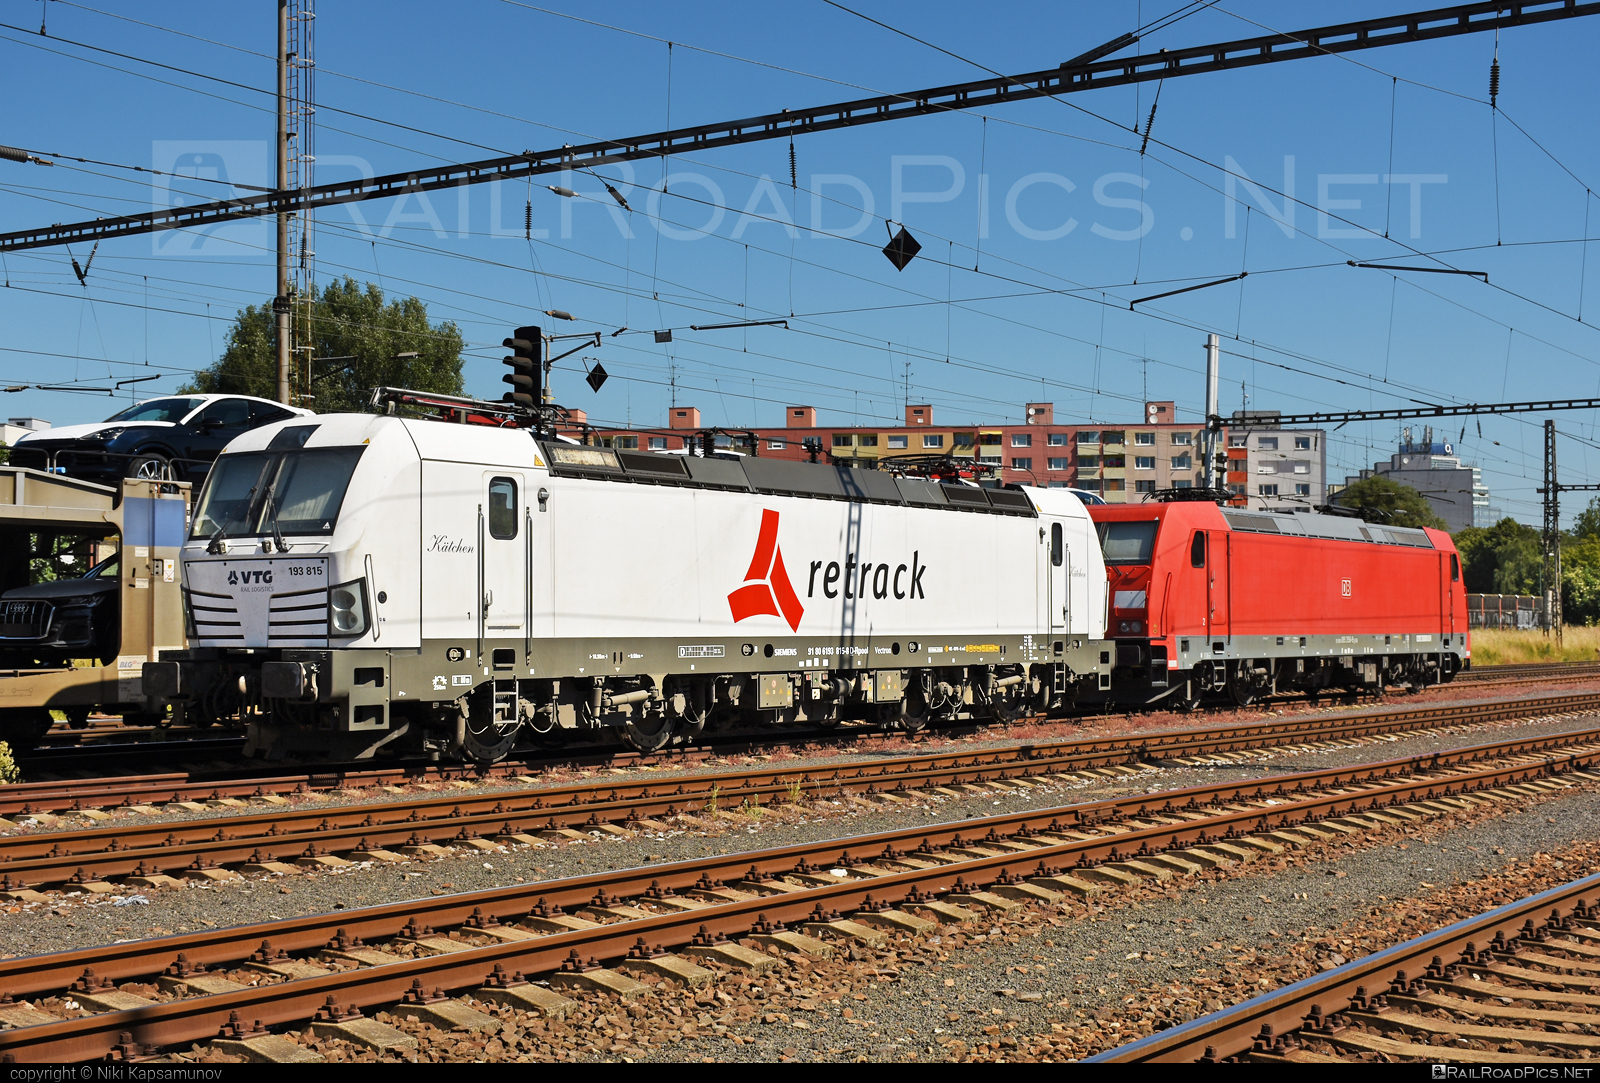 Siemens Vectron AC - 193 815 operated by Retrack GmbH & Co. KG #railpool #railpoolgmbh #retrack #retrackgmbh #siemens #siemensvectron #siemensvectronac #vectron #vectronac #vtg